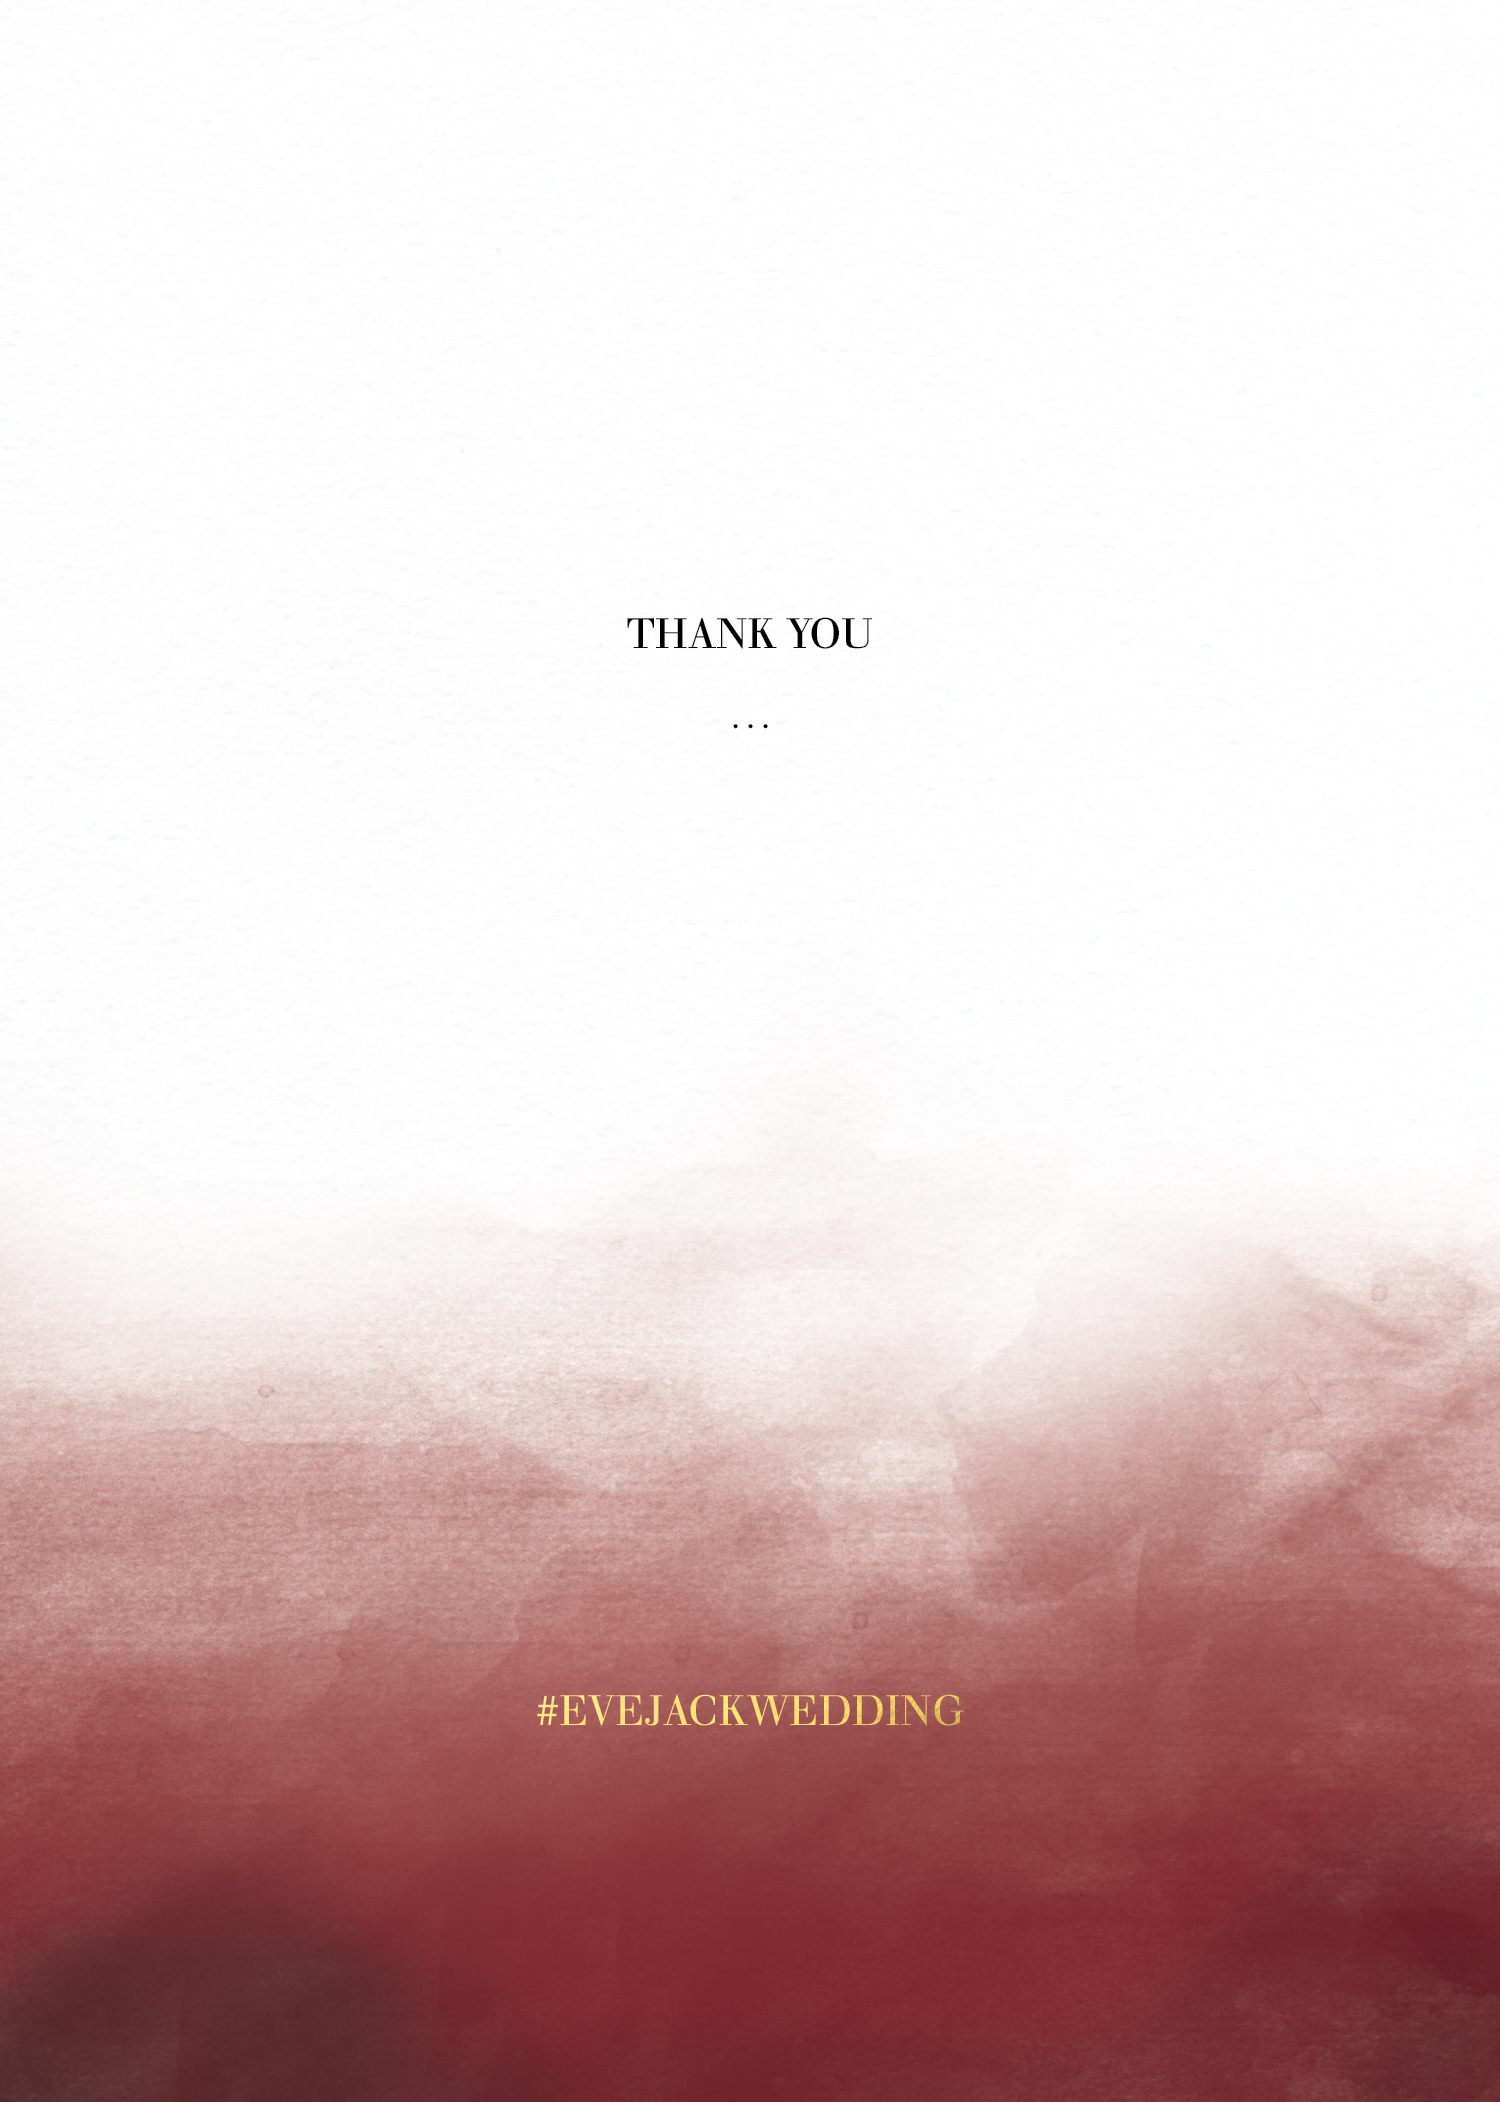 Maroon Love - Thank You